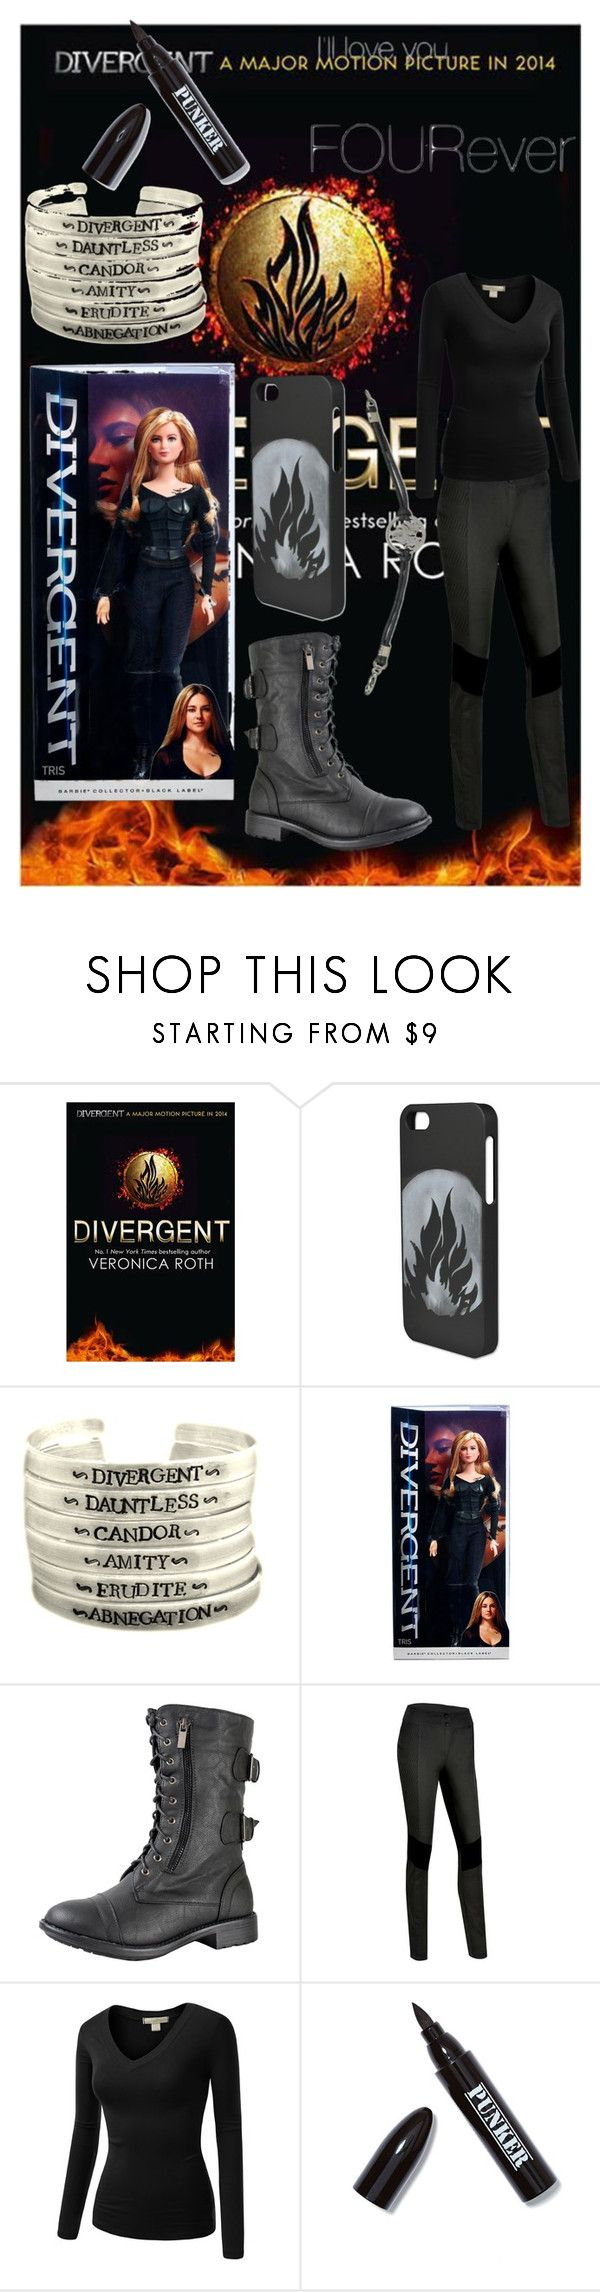 """""""divergent slkwx"""" by somebodyismeortuorwhatever ❤ liked on Polyvore featuring Trilogy, J.TOMSON and Ardency Inn"""